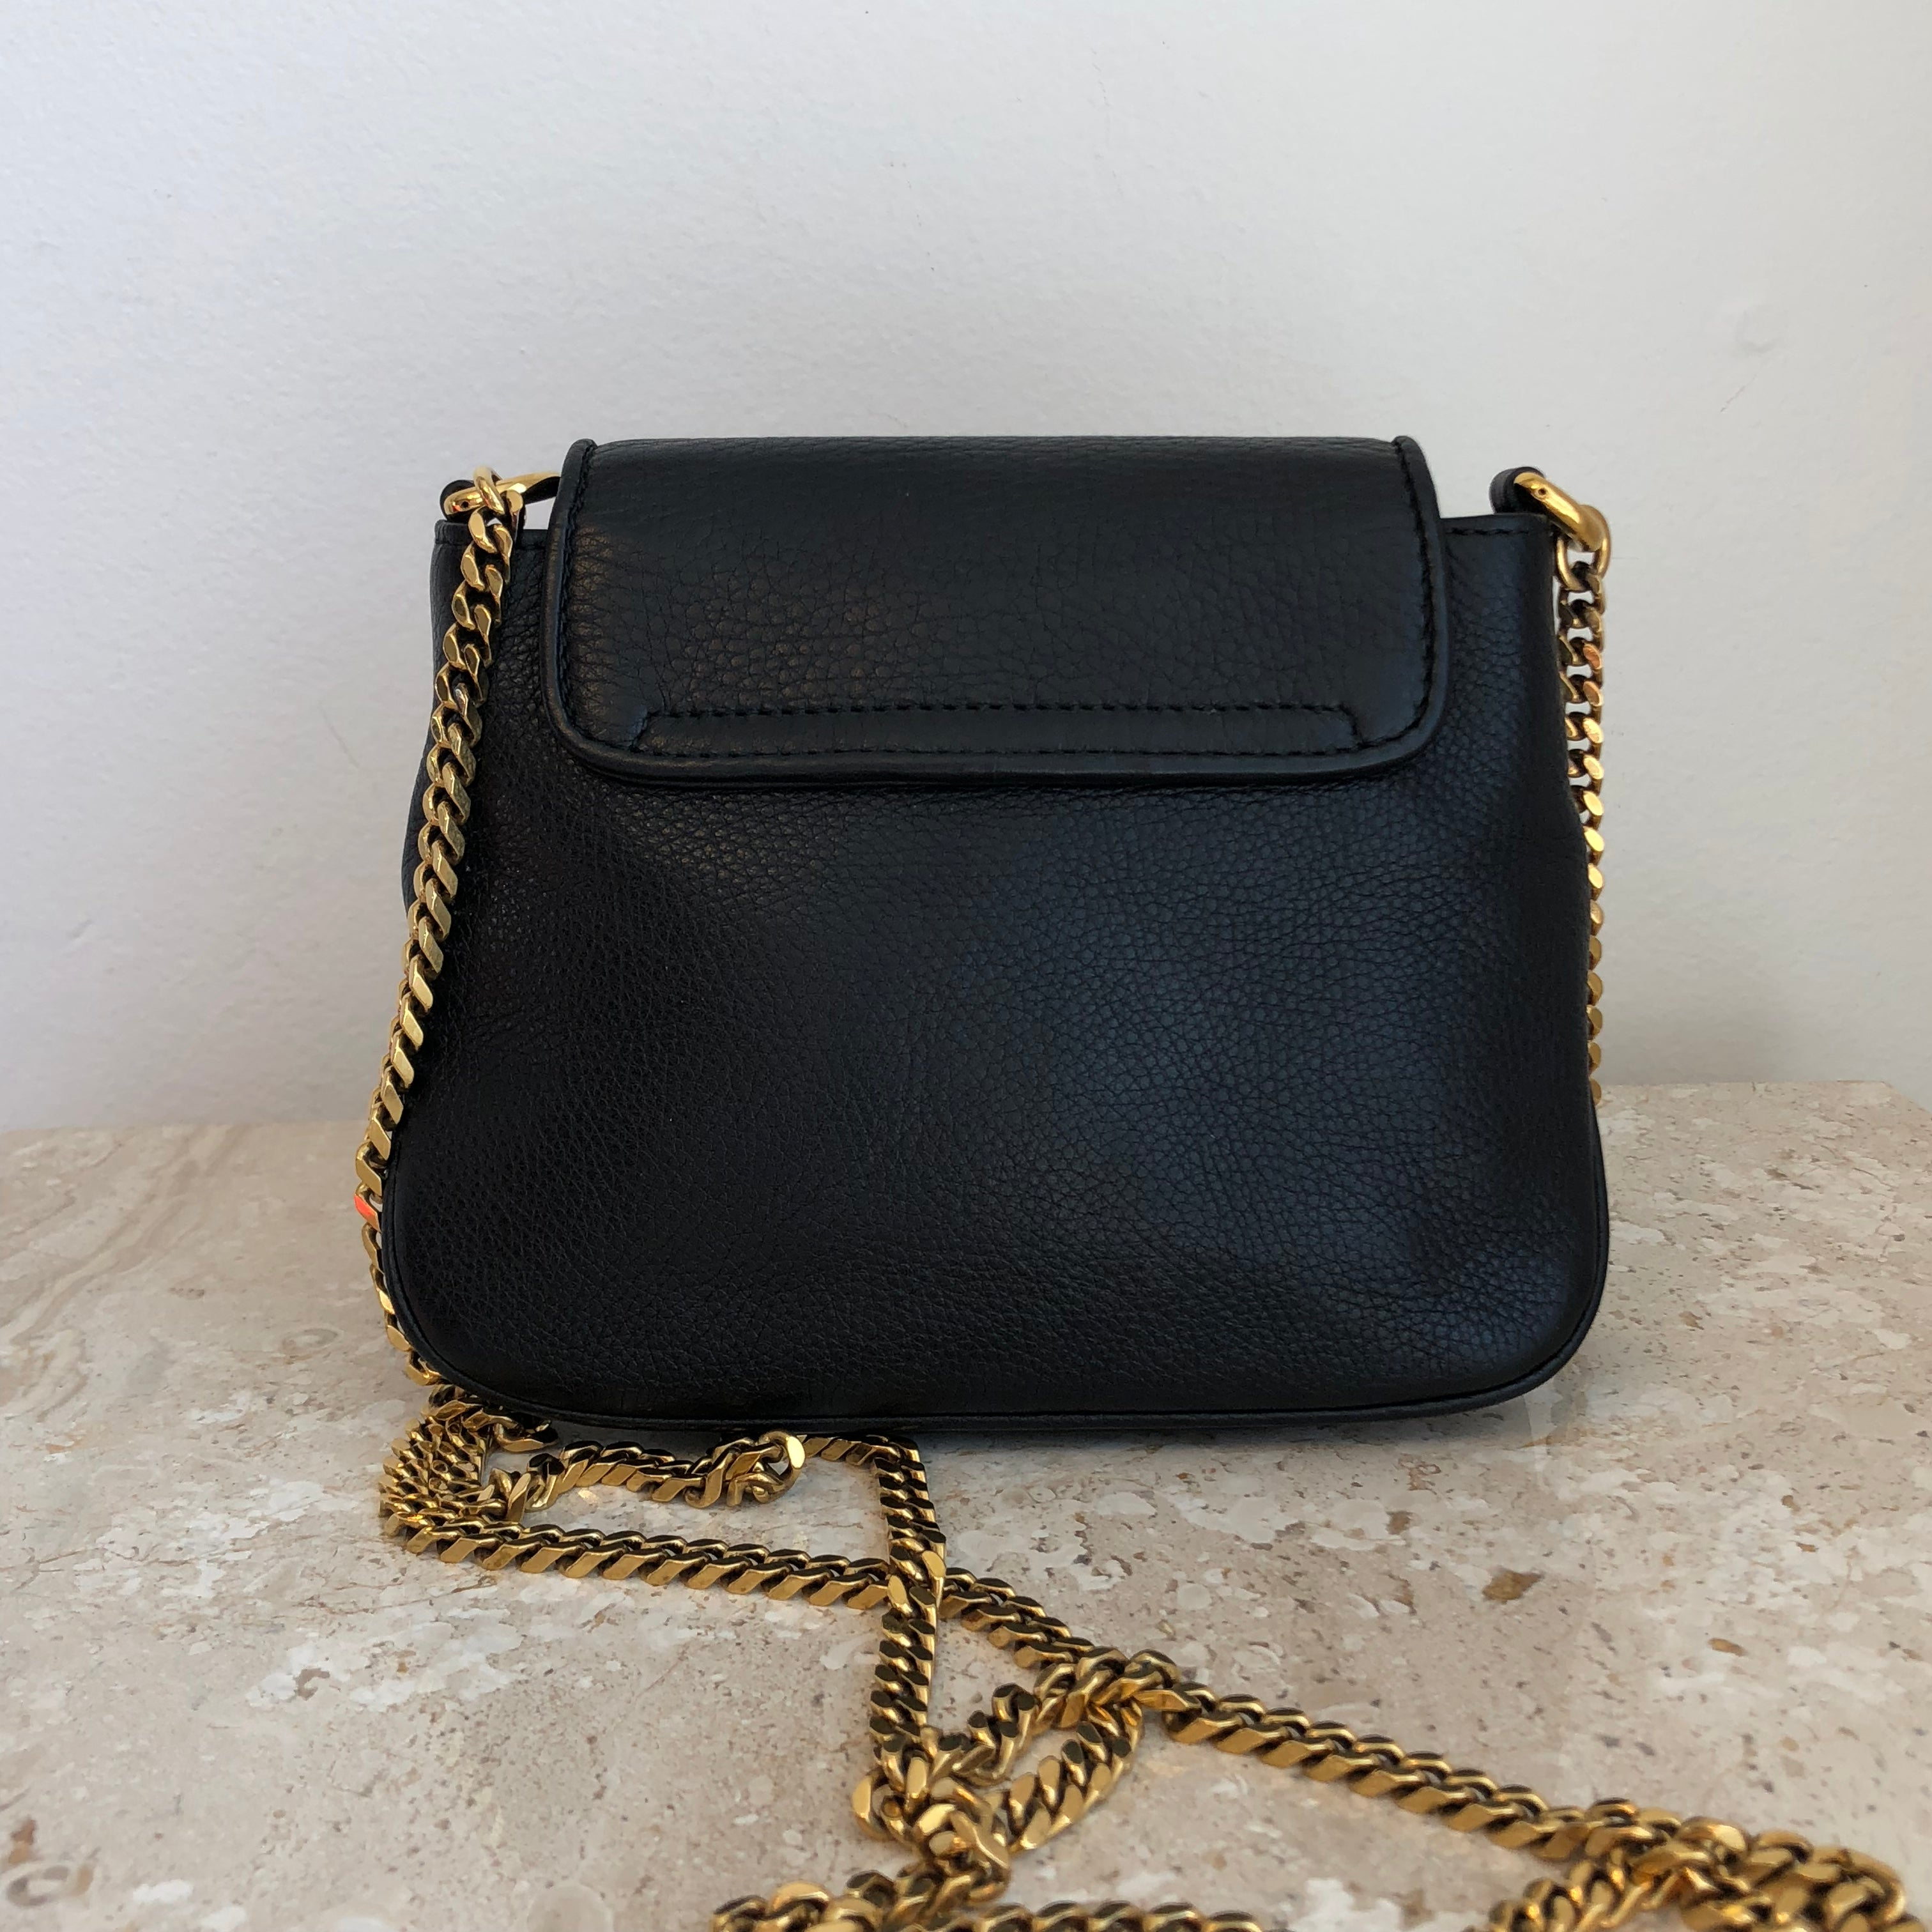 Authentic GUCCI 1973 Black Pebbled Leather Crossbody